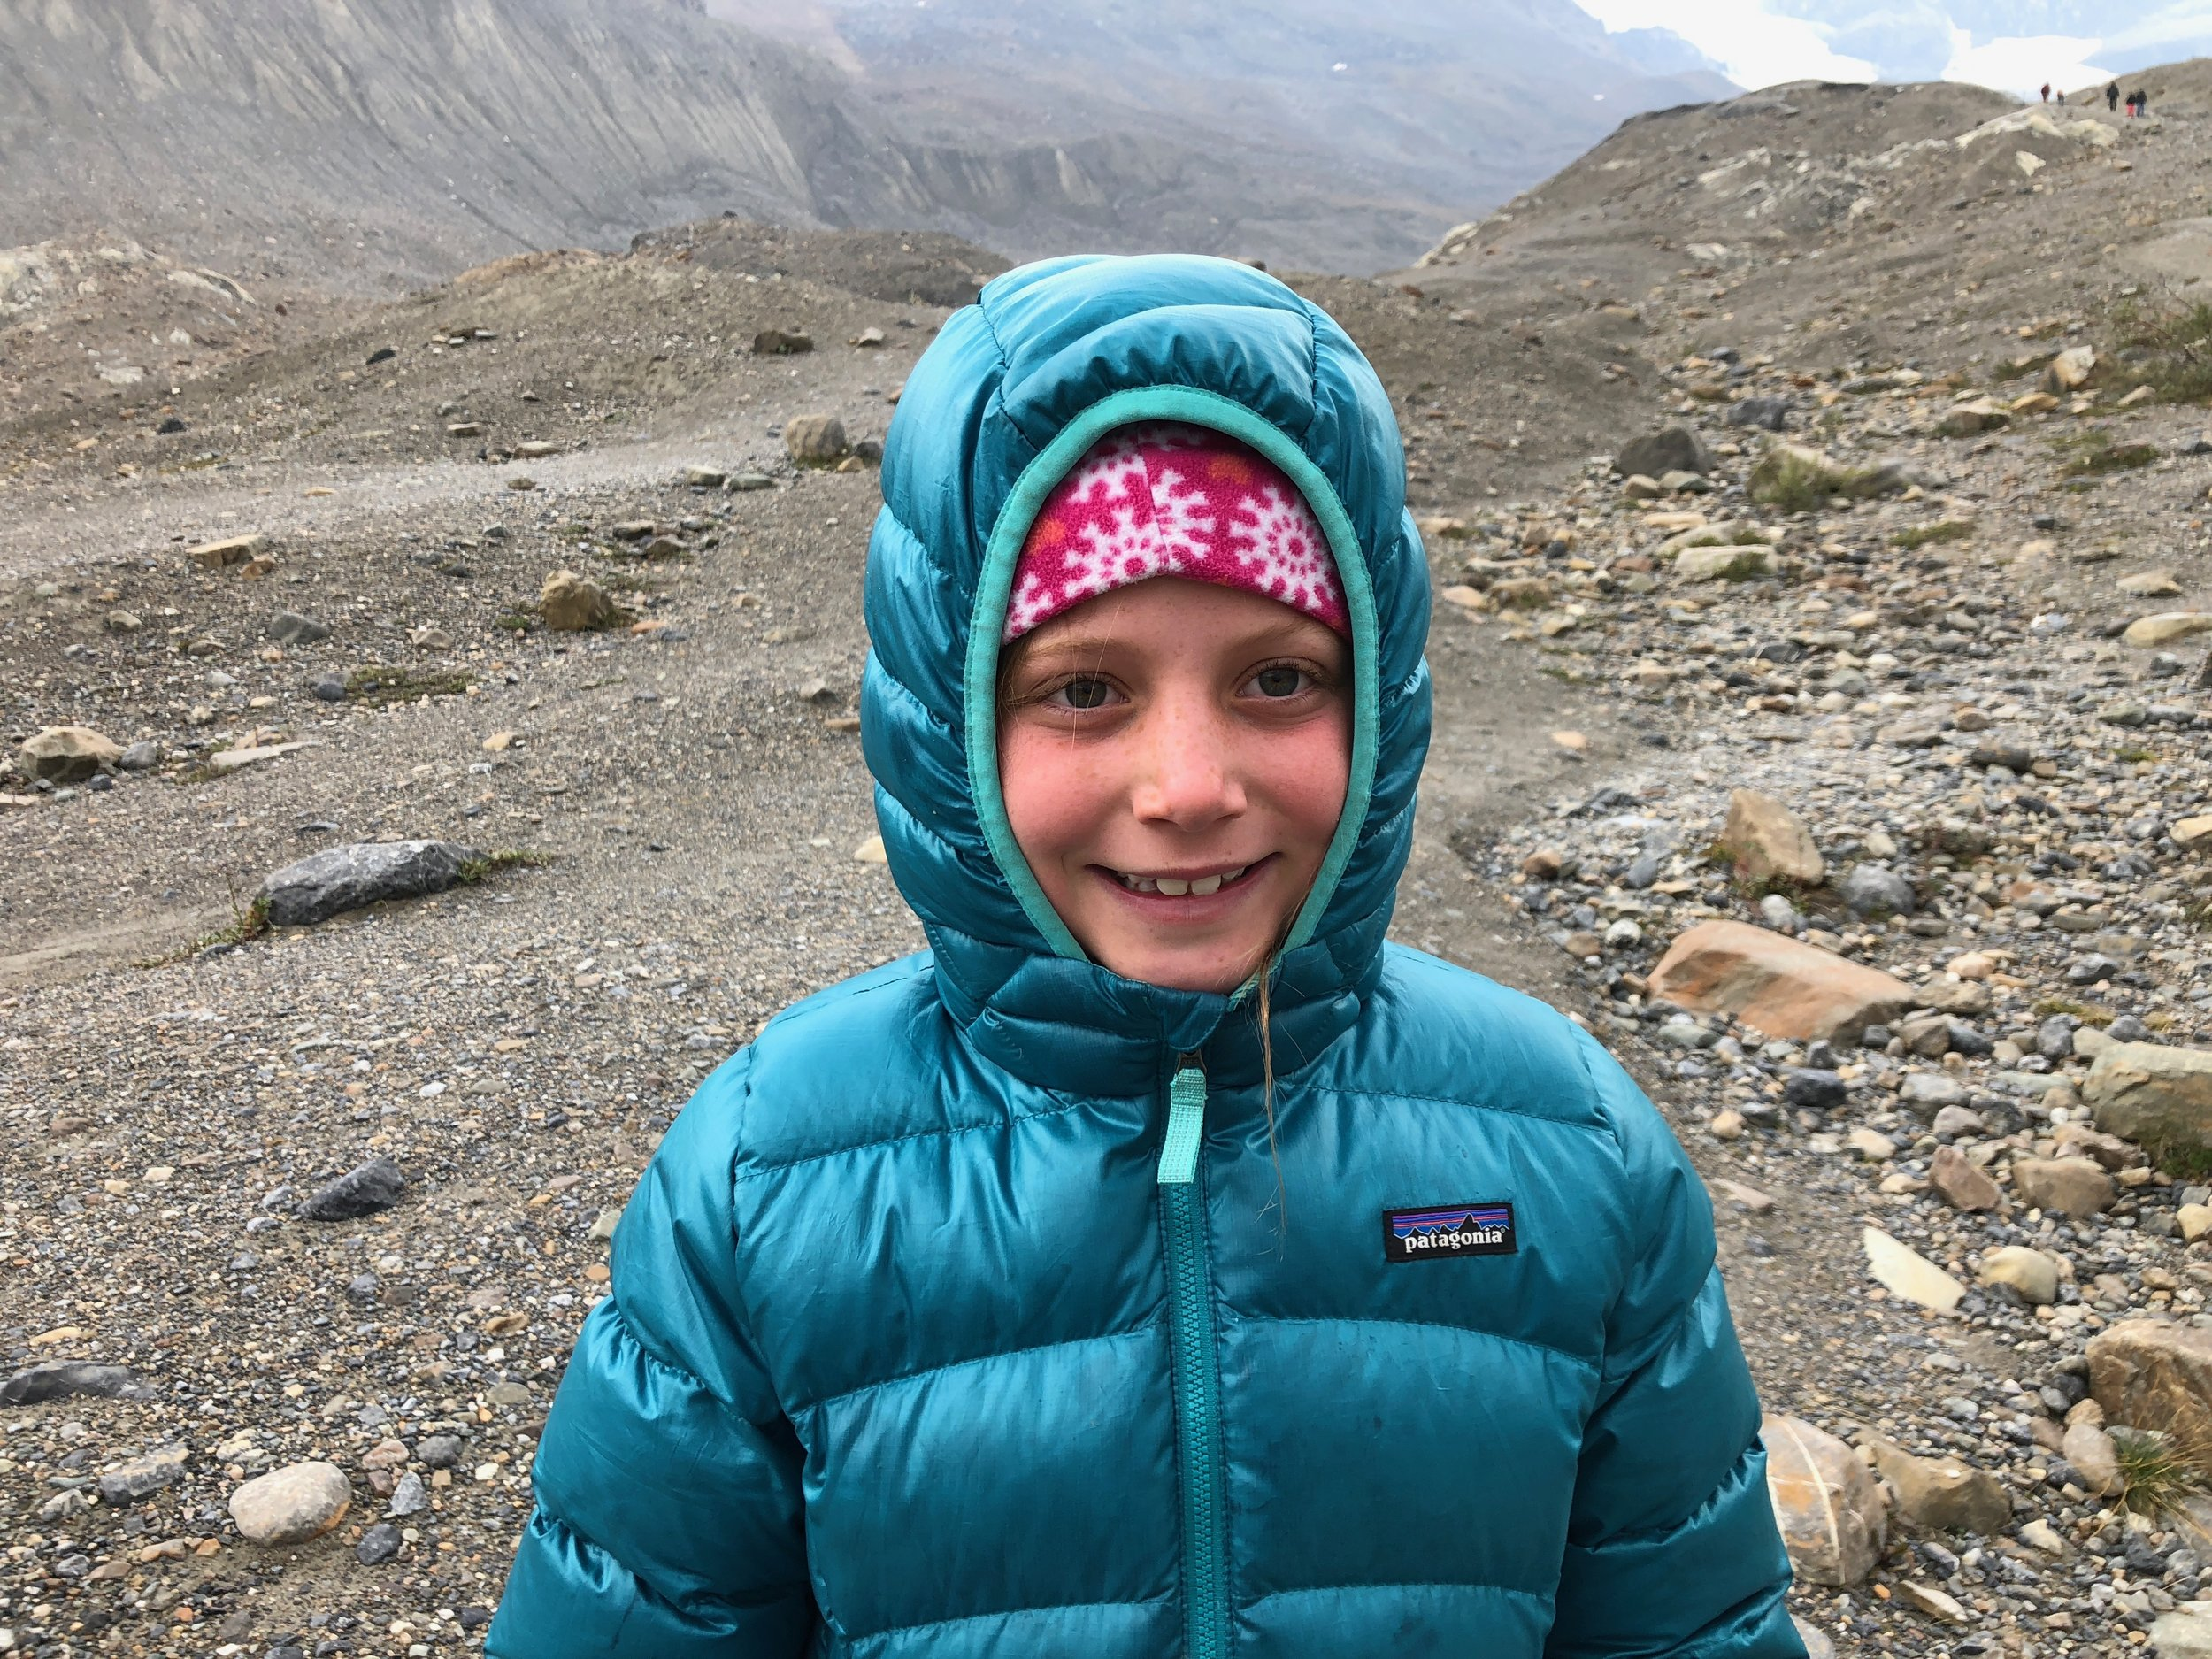 Bundled and ready to check out Athabasca Glacier